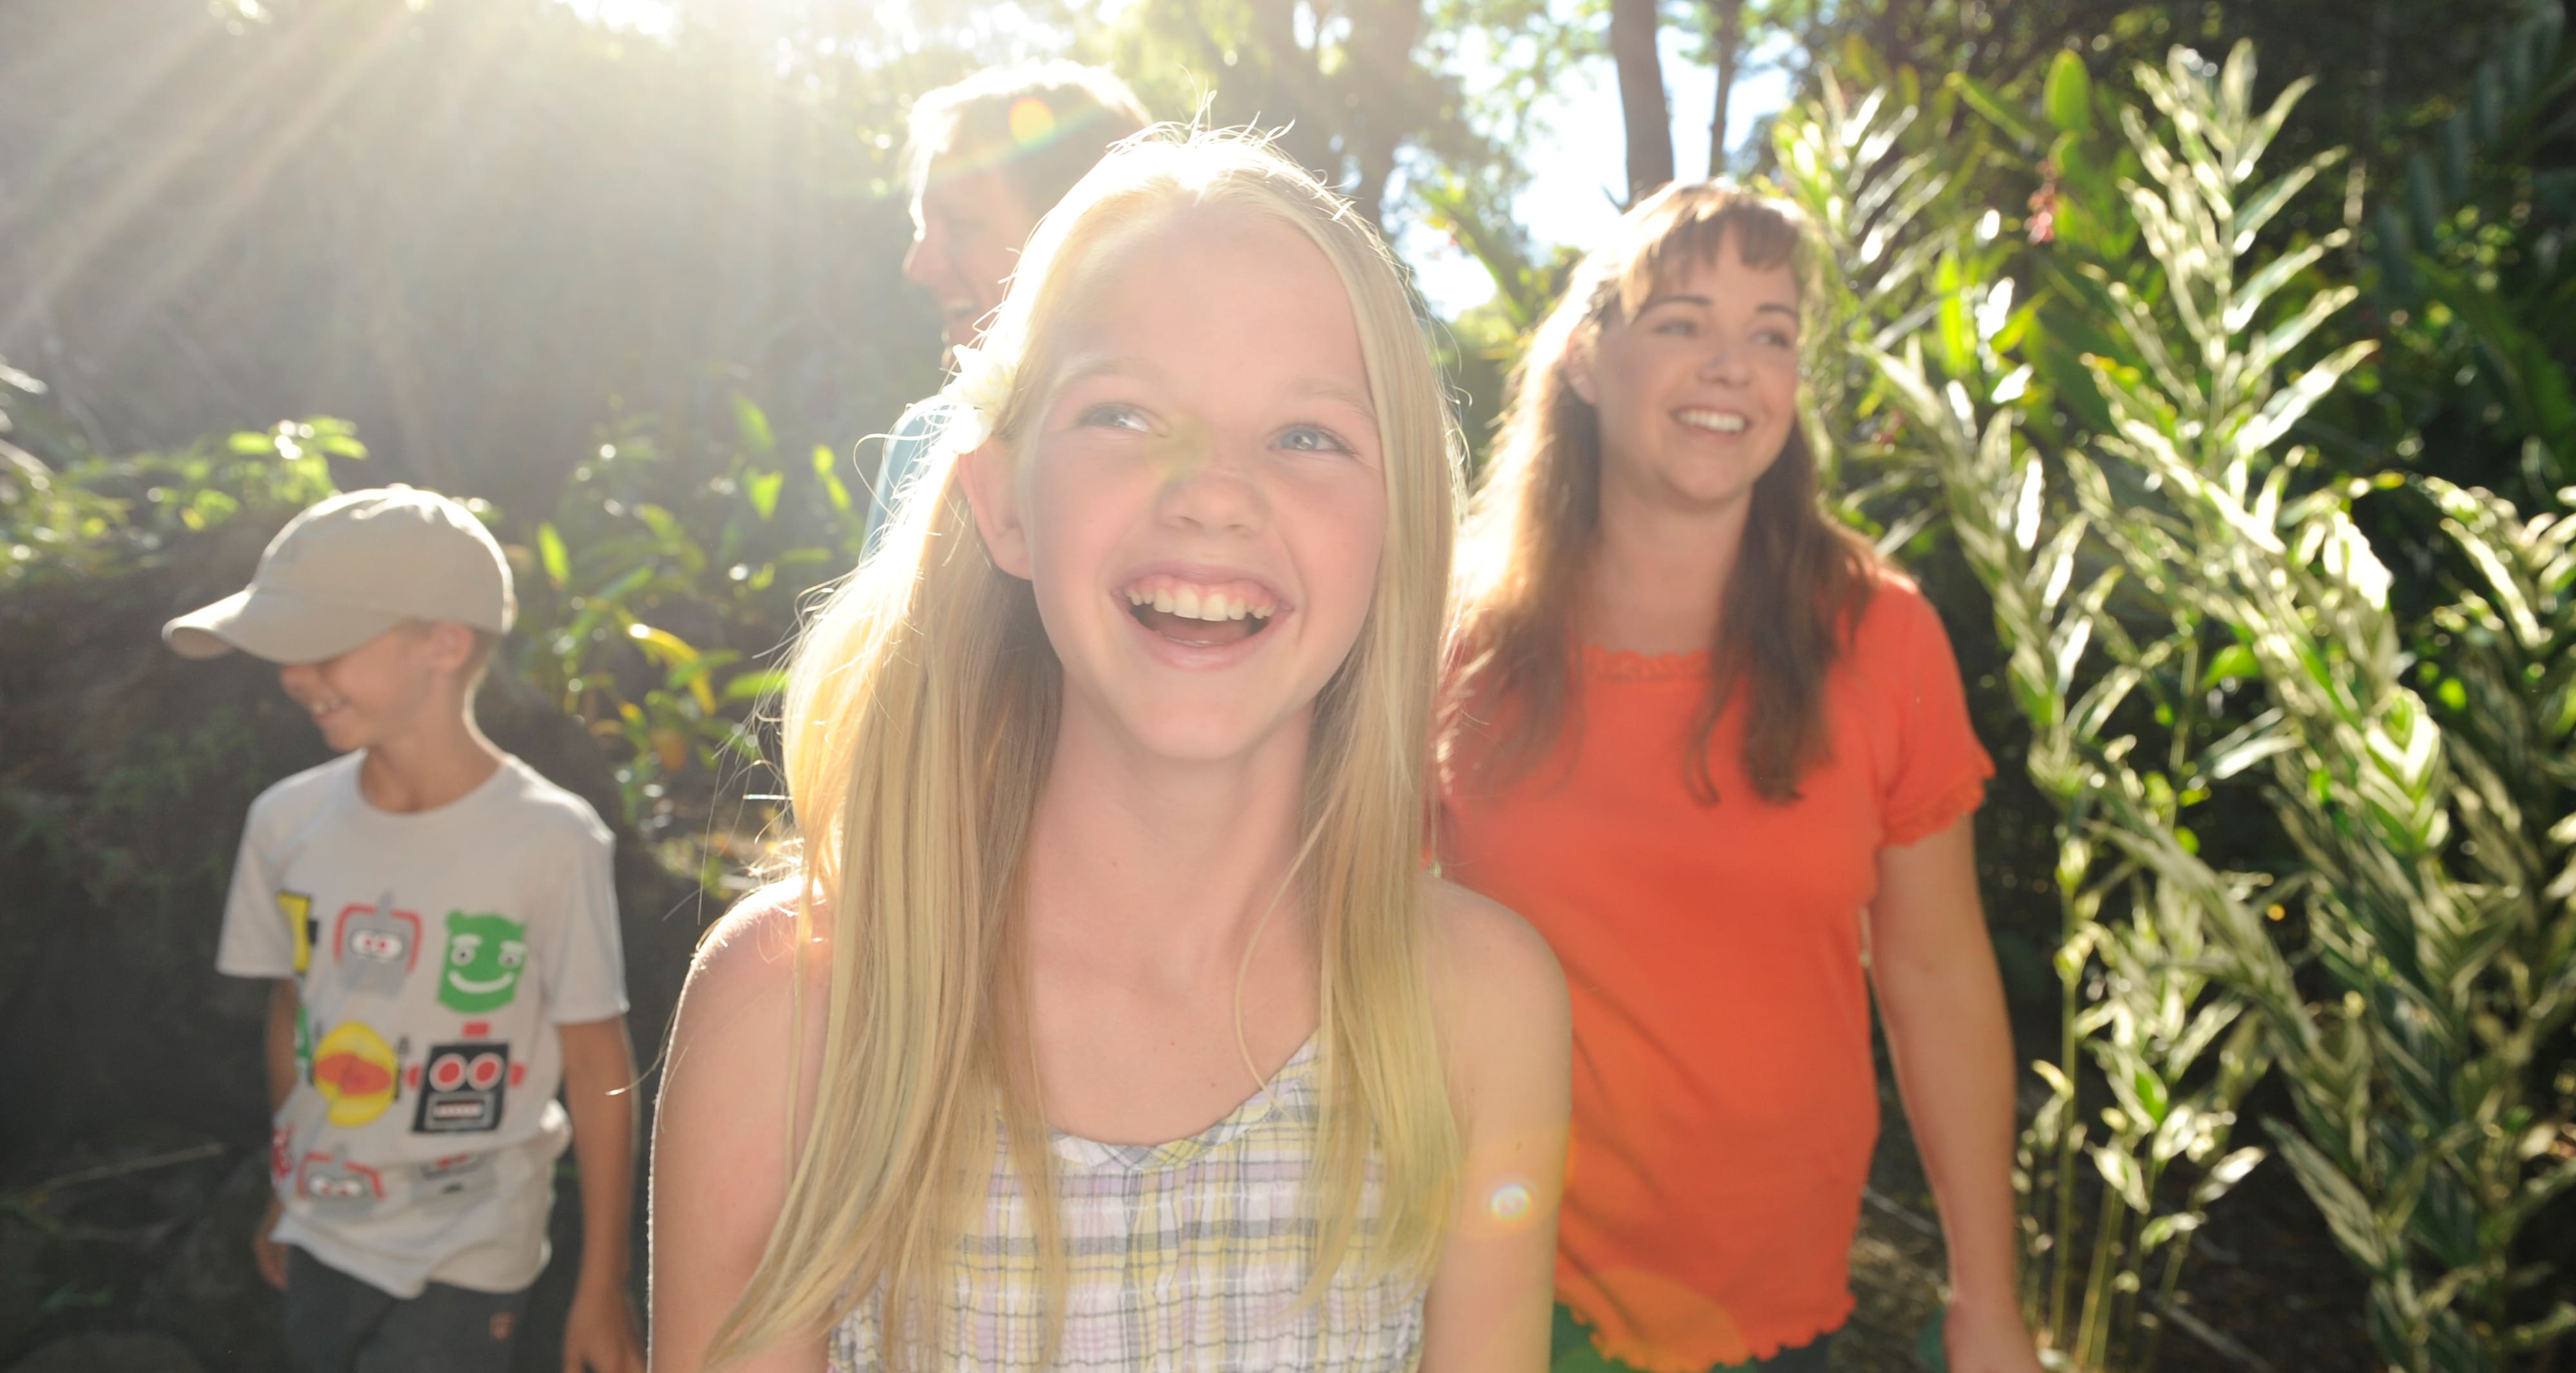 A smiling girl leads her mother, father and brother on a sun-dappled path through a tropical forest